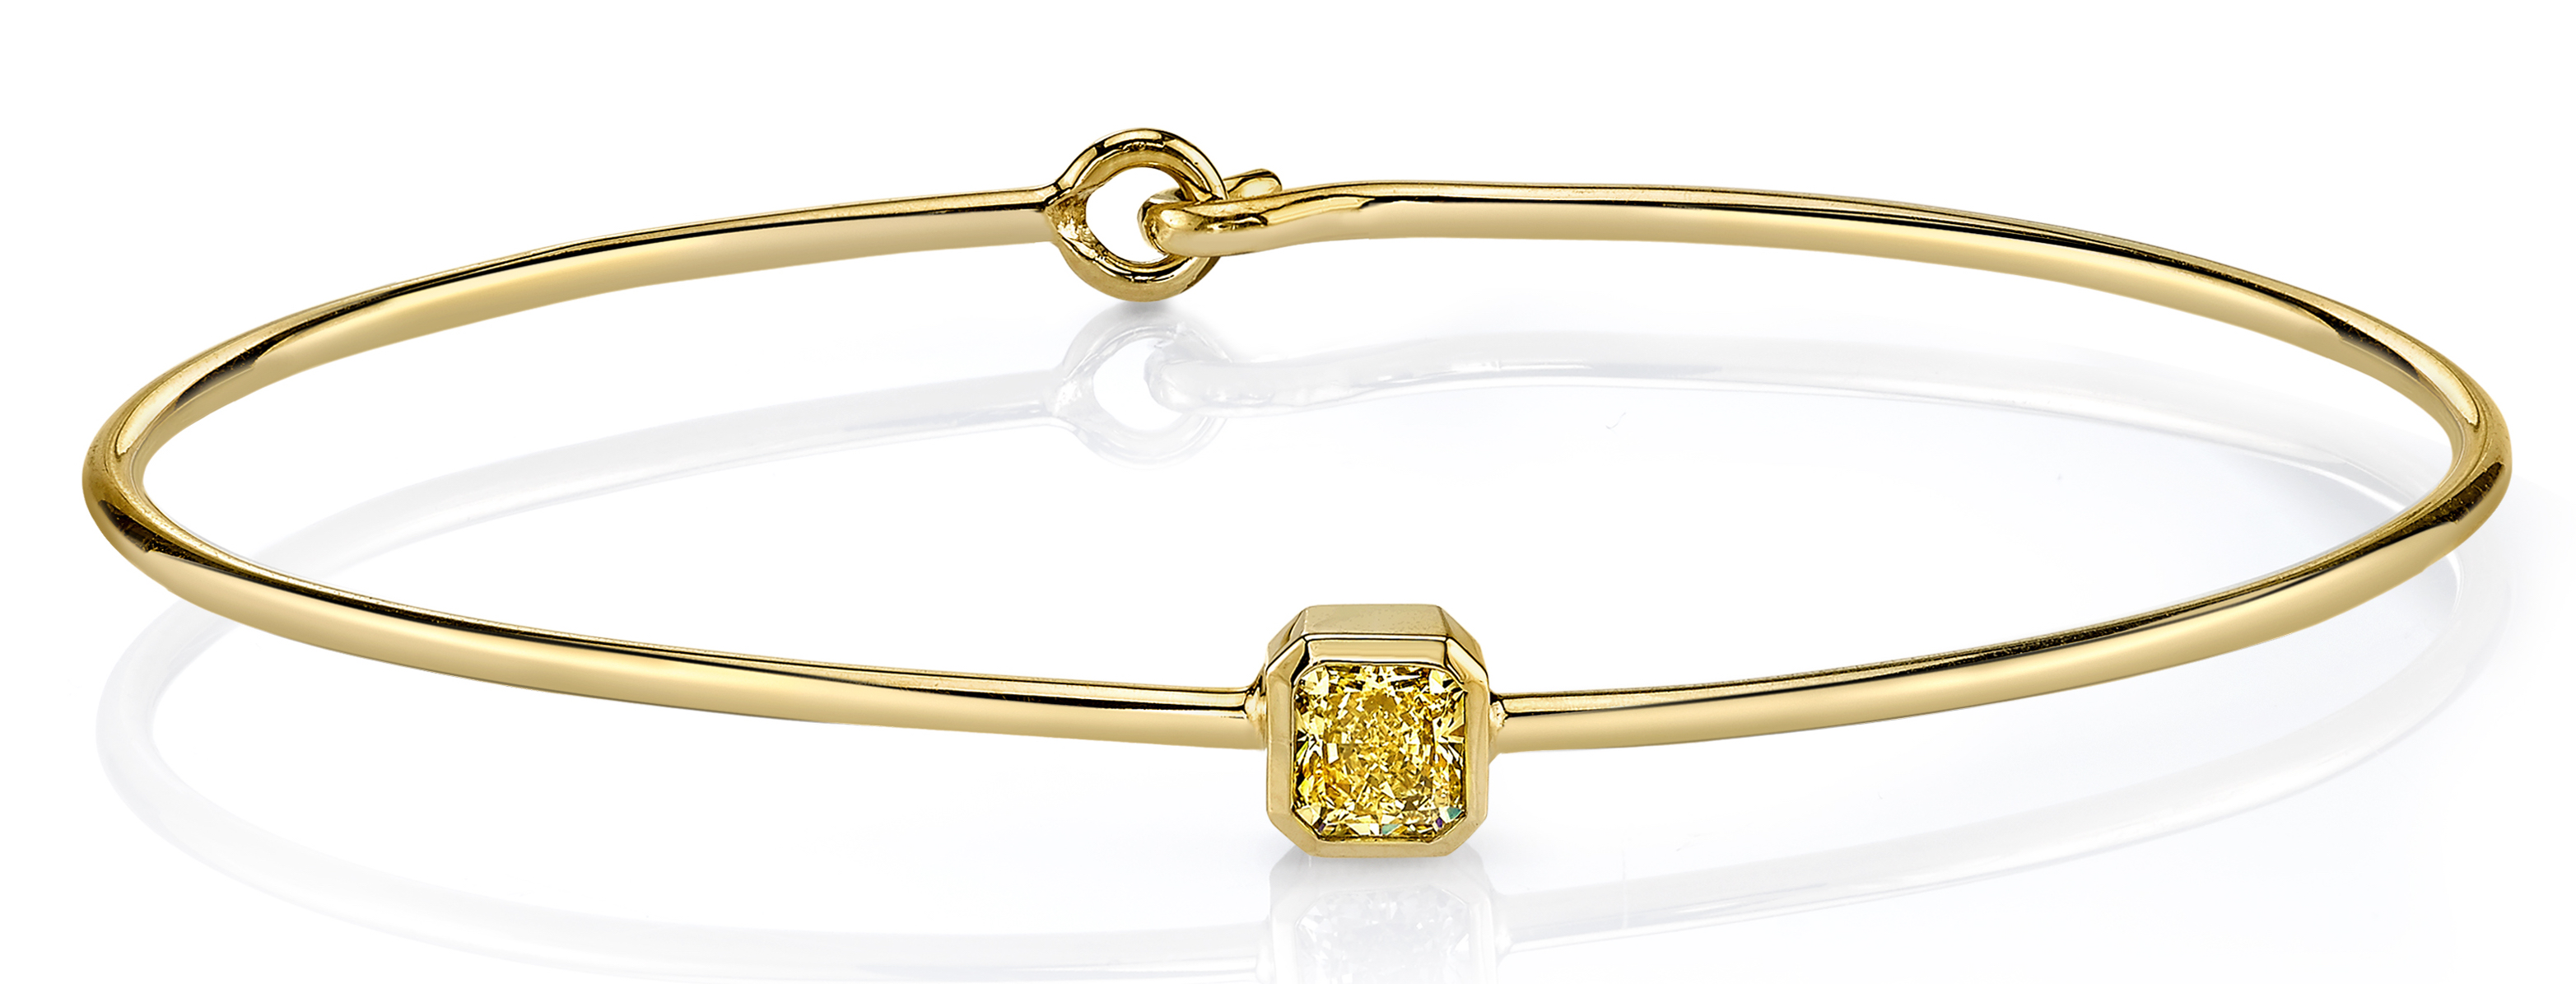 Dalumi yellow diamond charm bracelet | JCK On Your Market